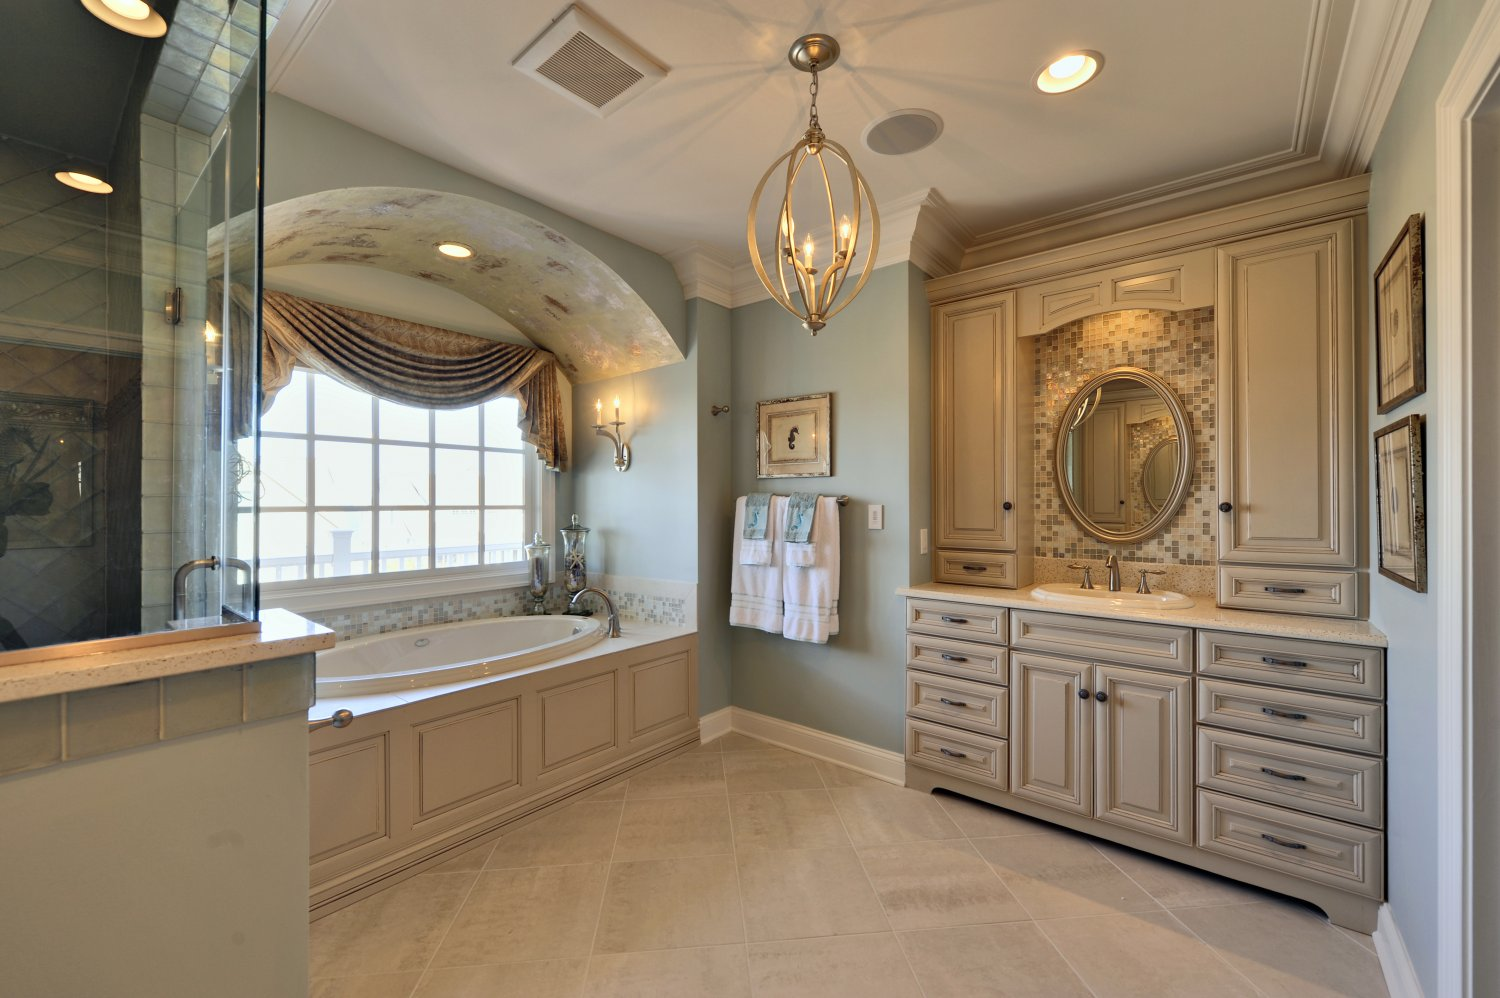 Cape shores photo gallery of custom delaware new homes - Master bathroom decorating ideas ...